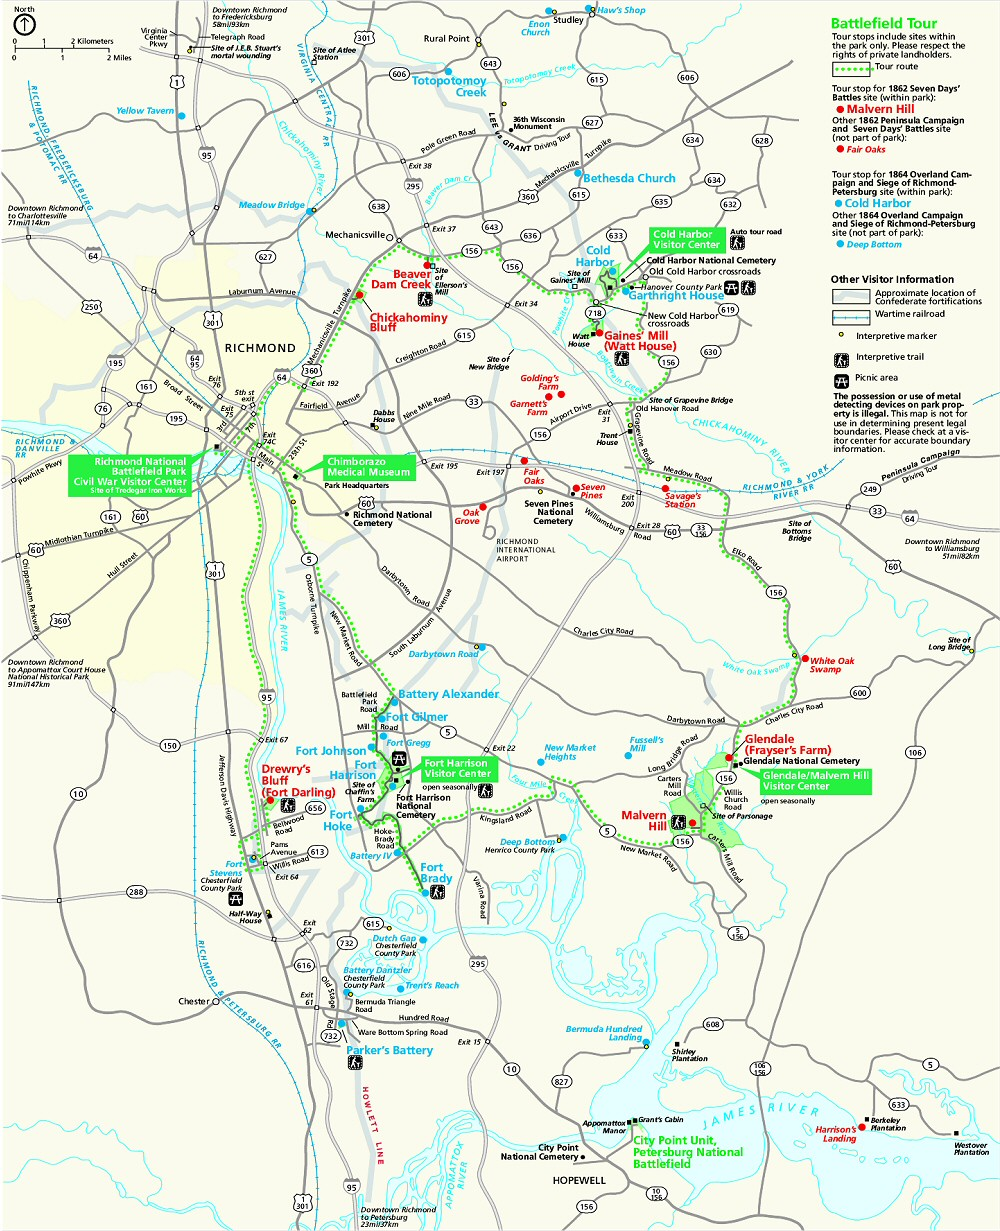 Greater Richmond Civil War Battlefields.jpg